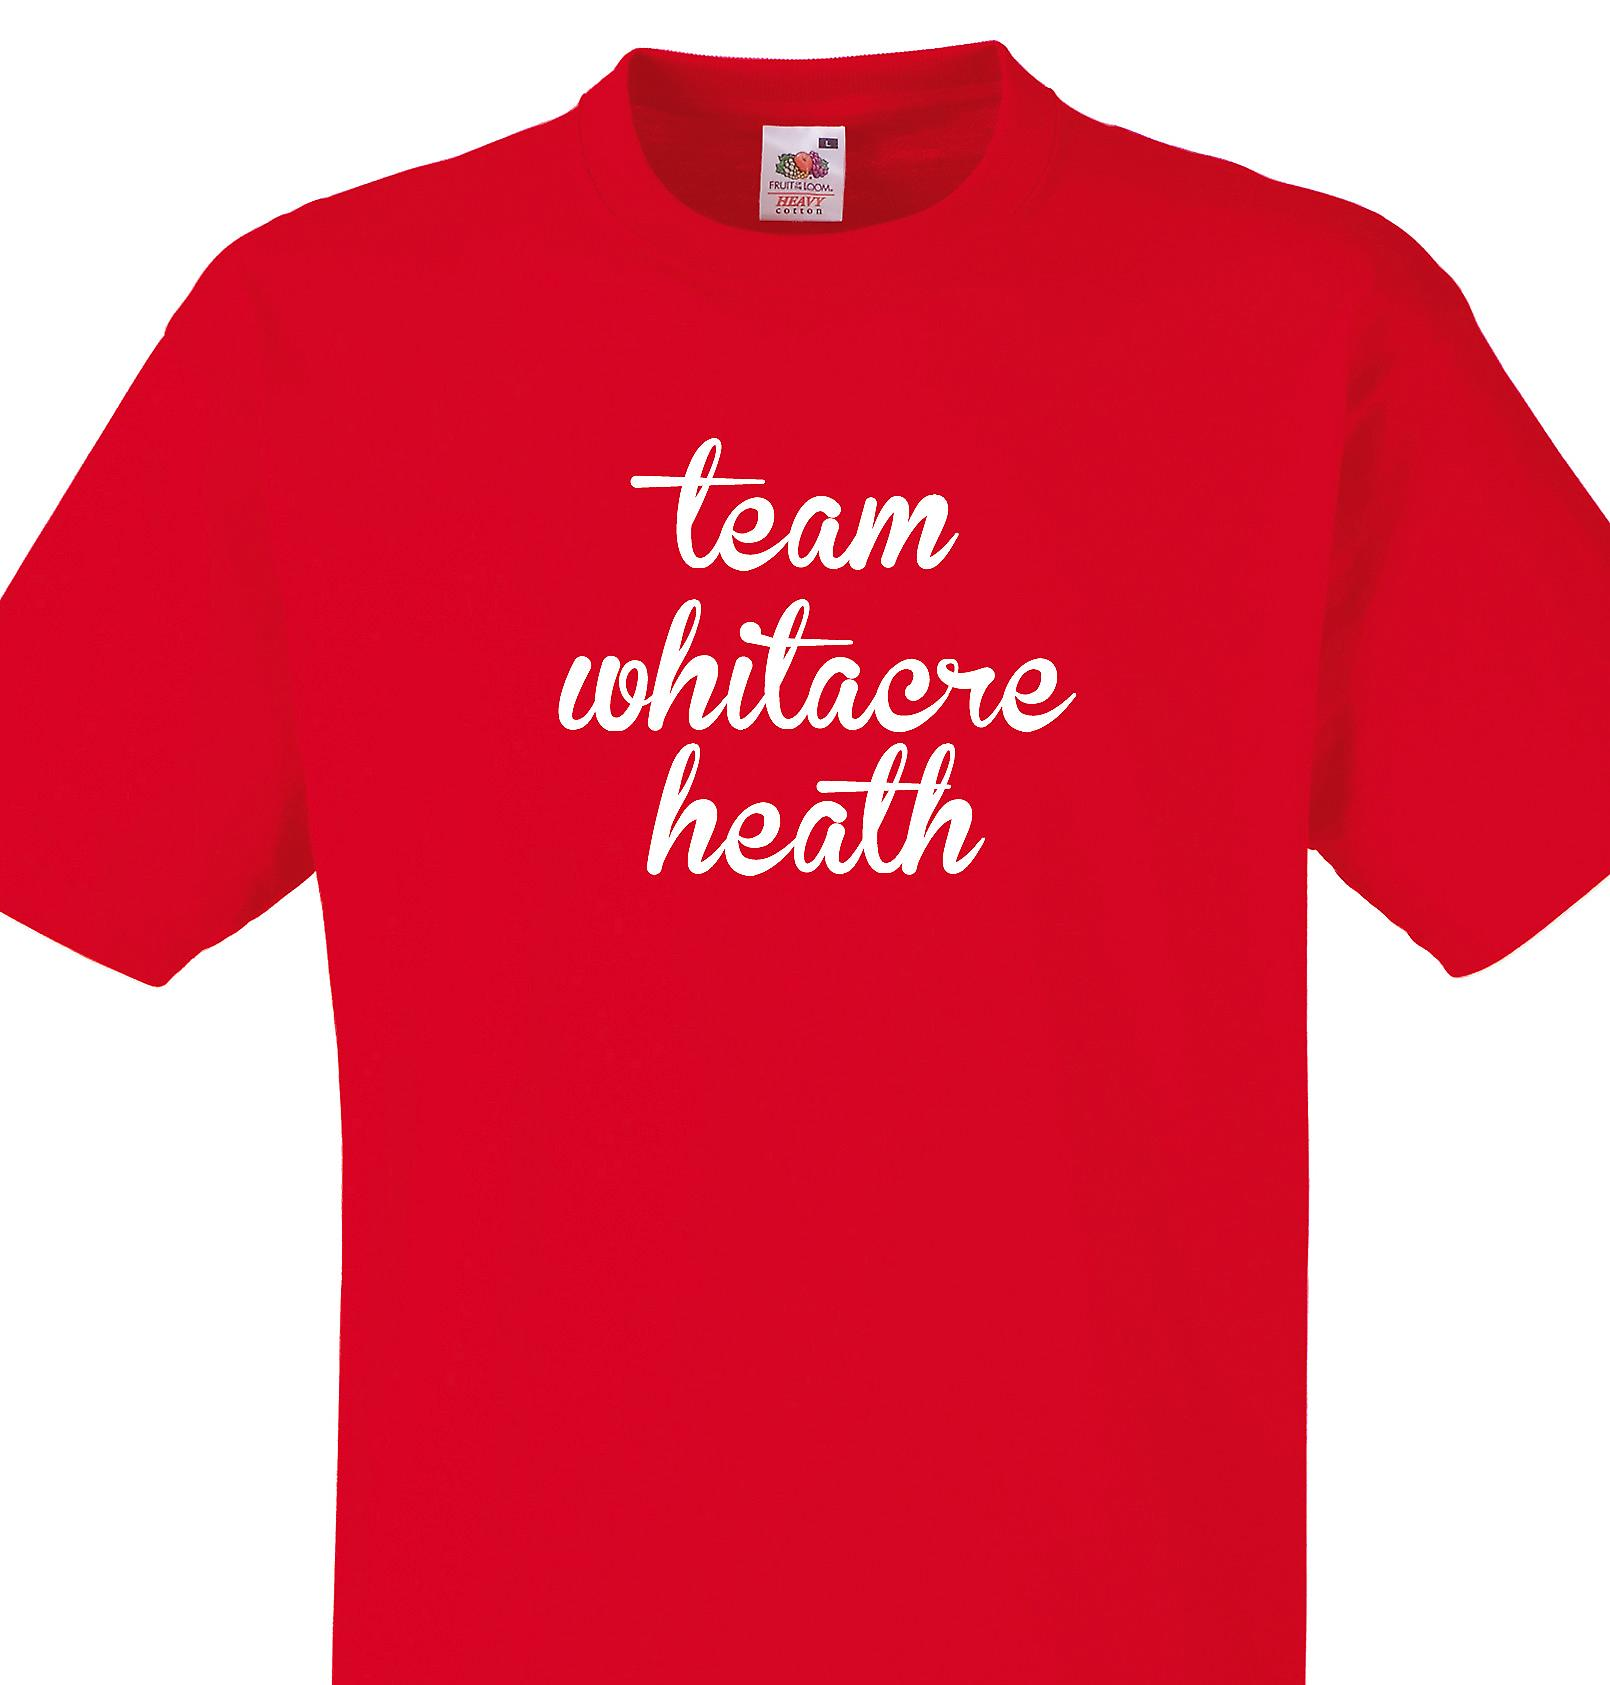 Team Whitacre heath Red T shirt